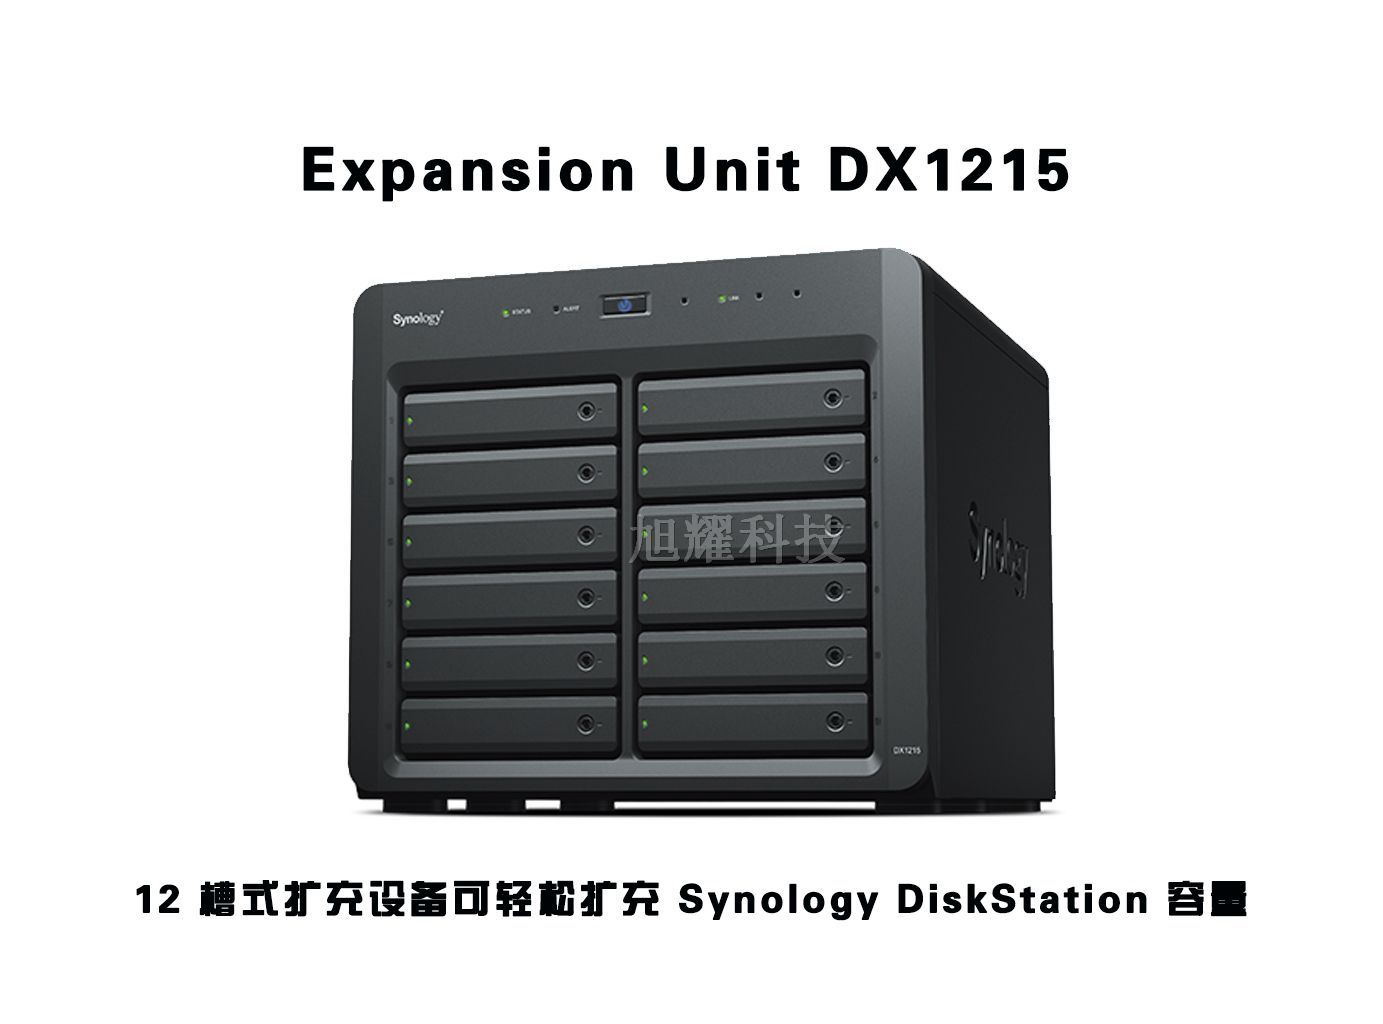 群晖 Expansion Unit DX1215 扩展柜